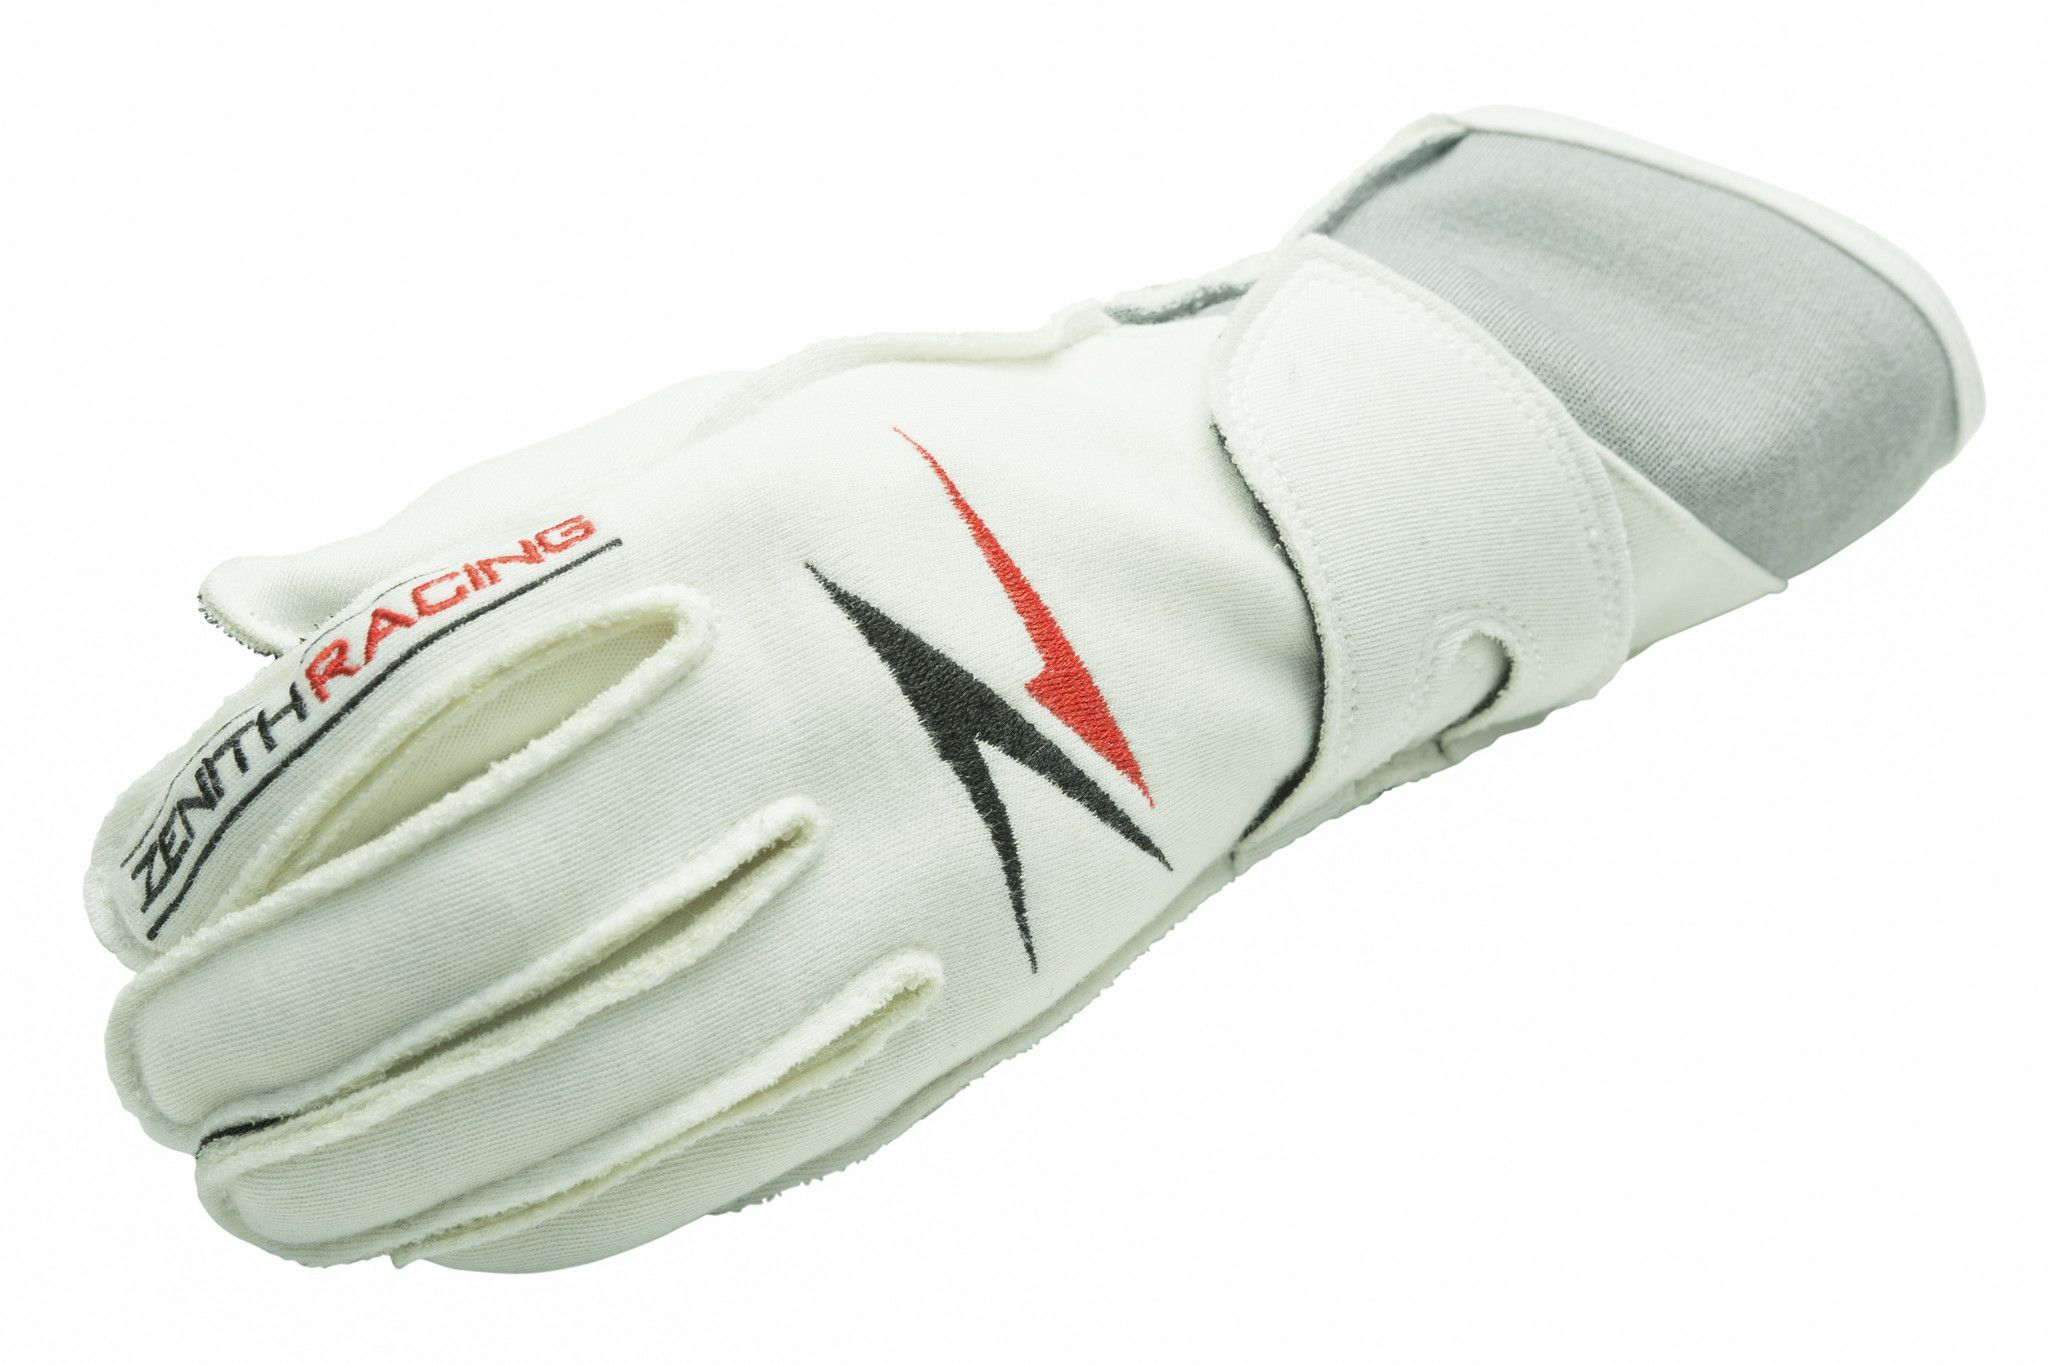 Zenith Racing Sp 1 Fia Reverse Seam Driving Gloves Fia